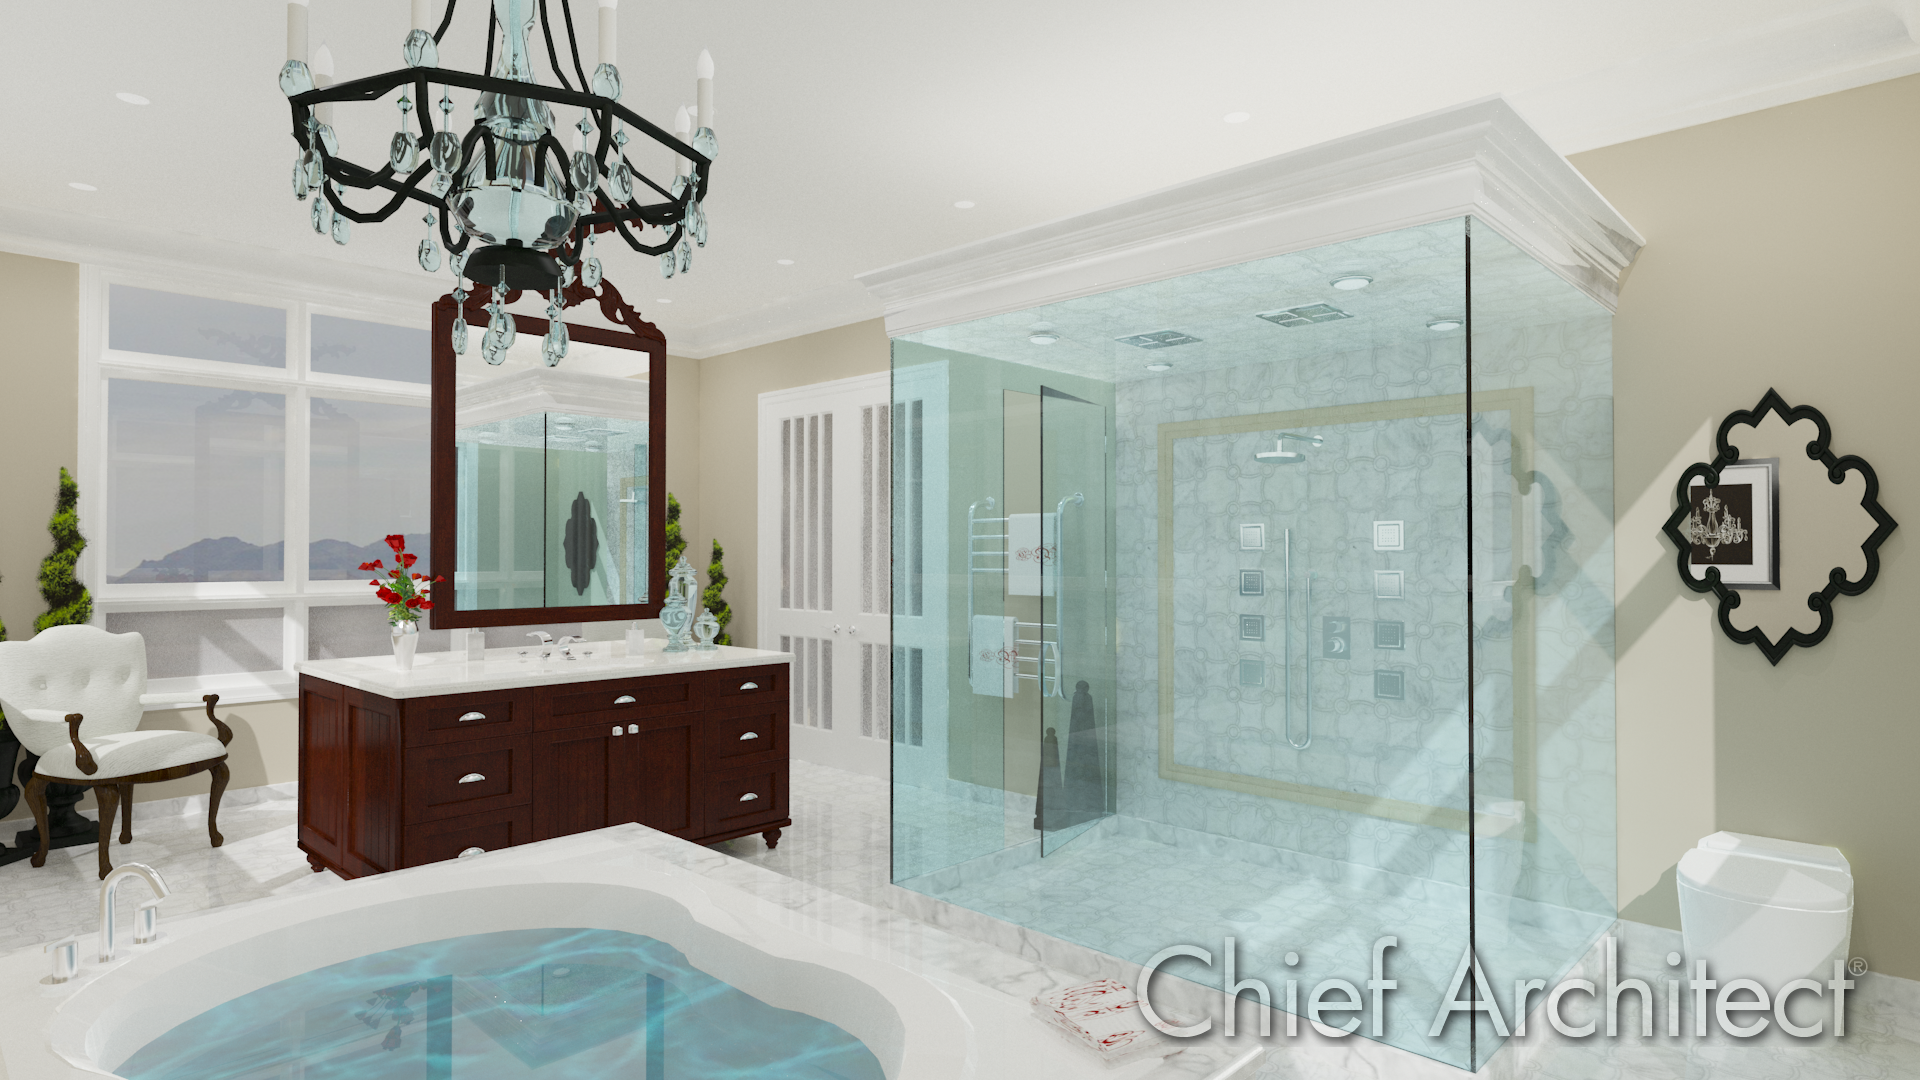 Bathroom Software Design Free Delectable Chandelier Bath  Chief Architect Software  Rendersideas Design Ideas